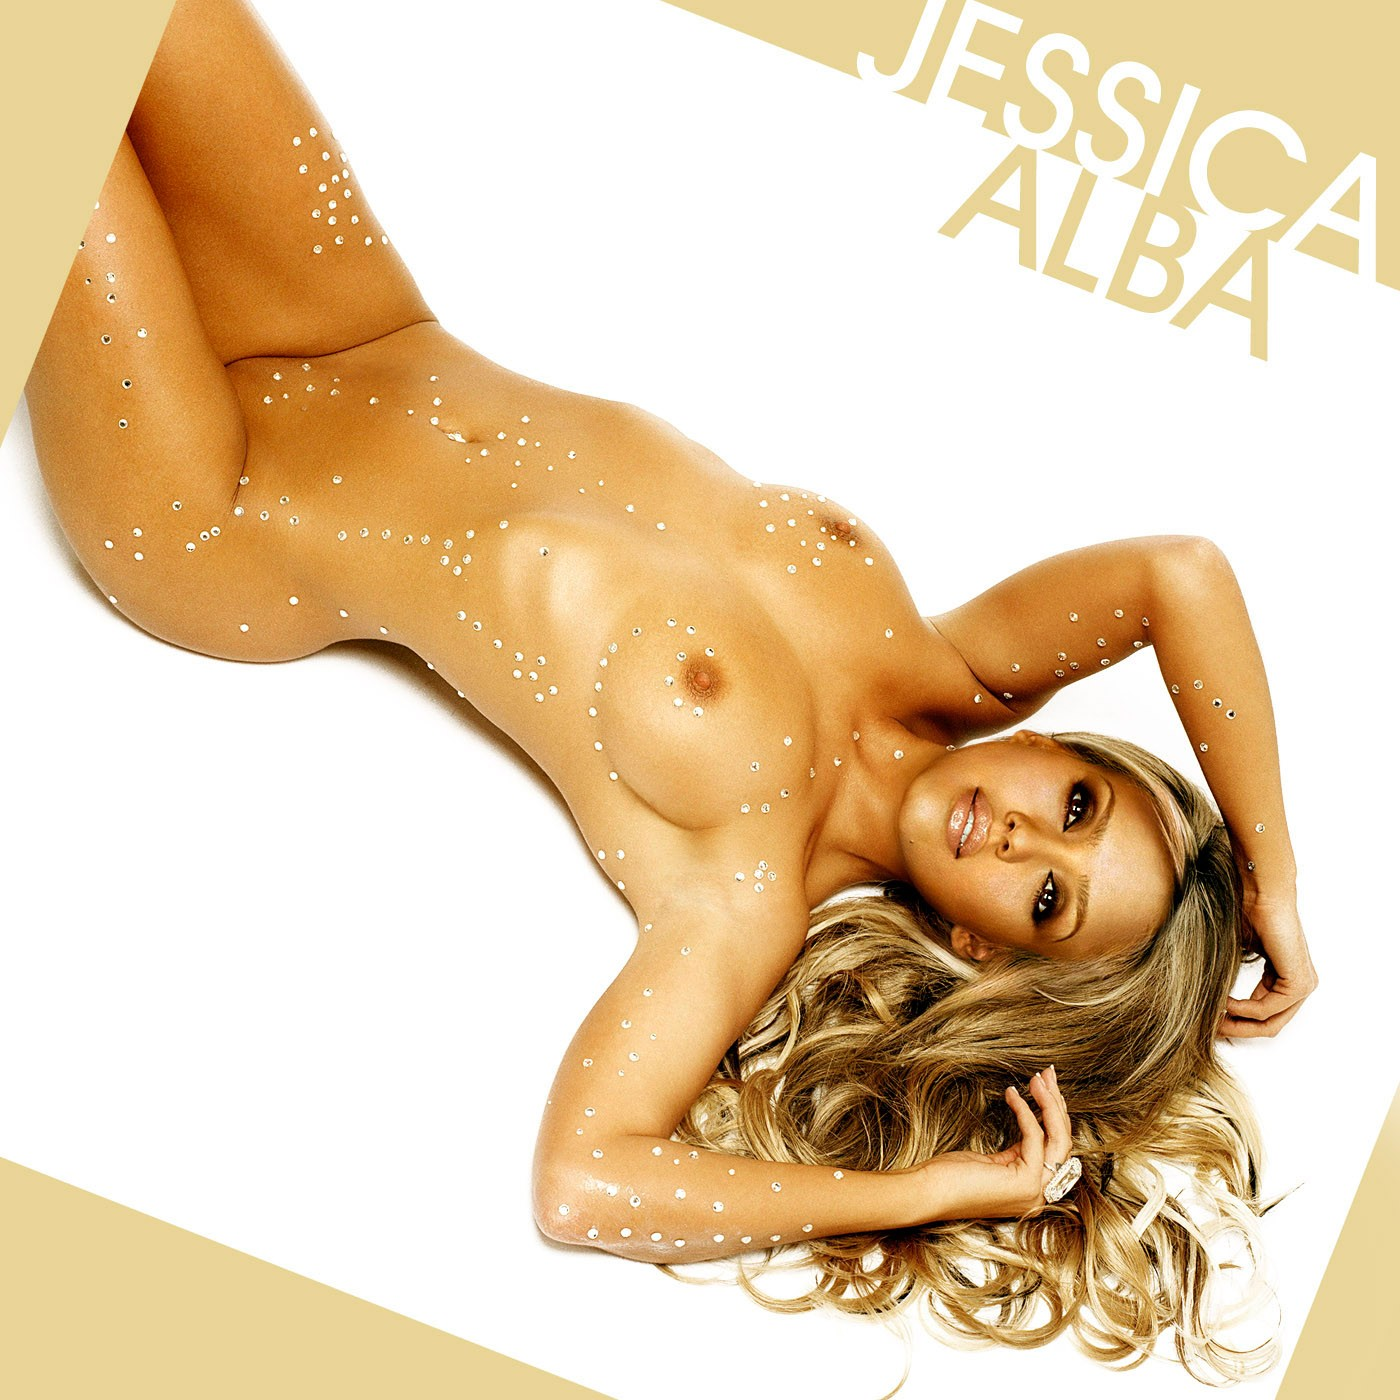 nude-jessica-alba-faked-naked-uncensored-japanese